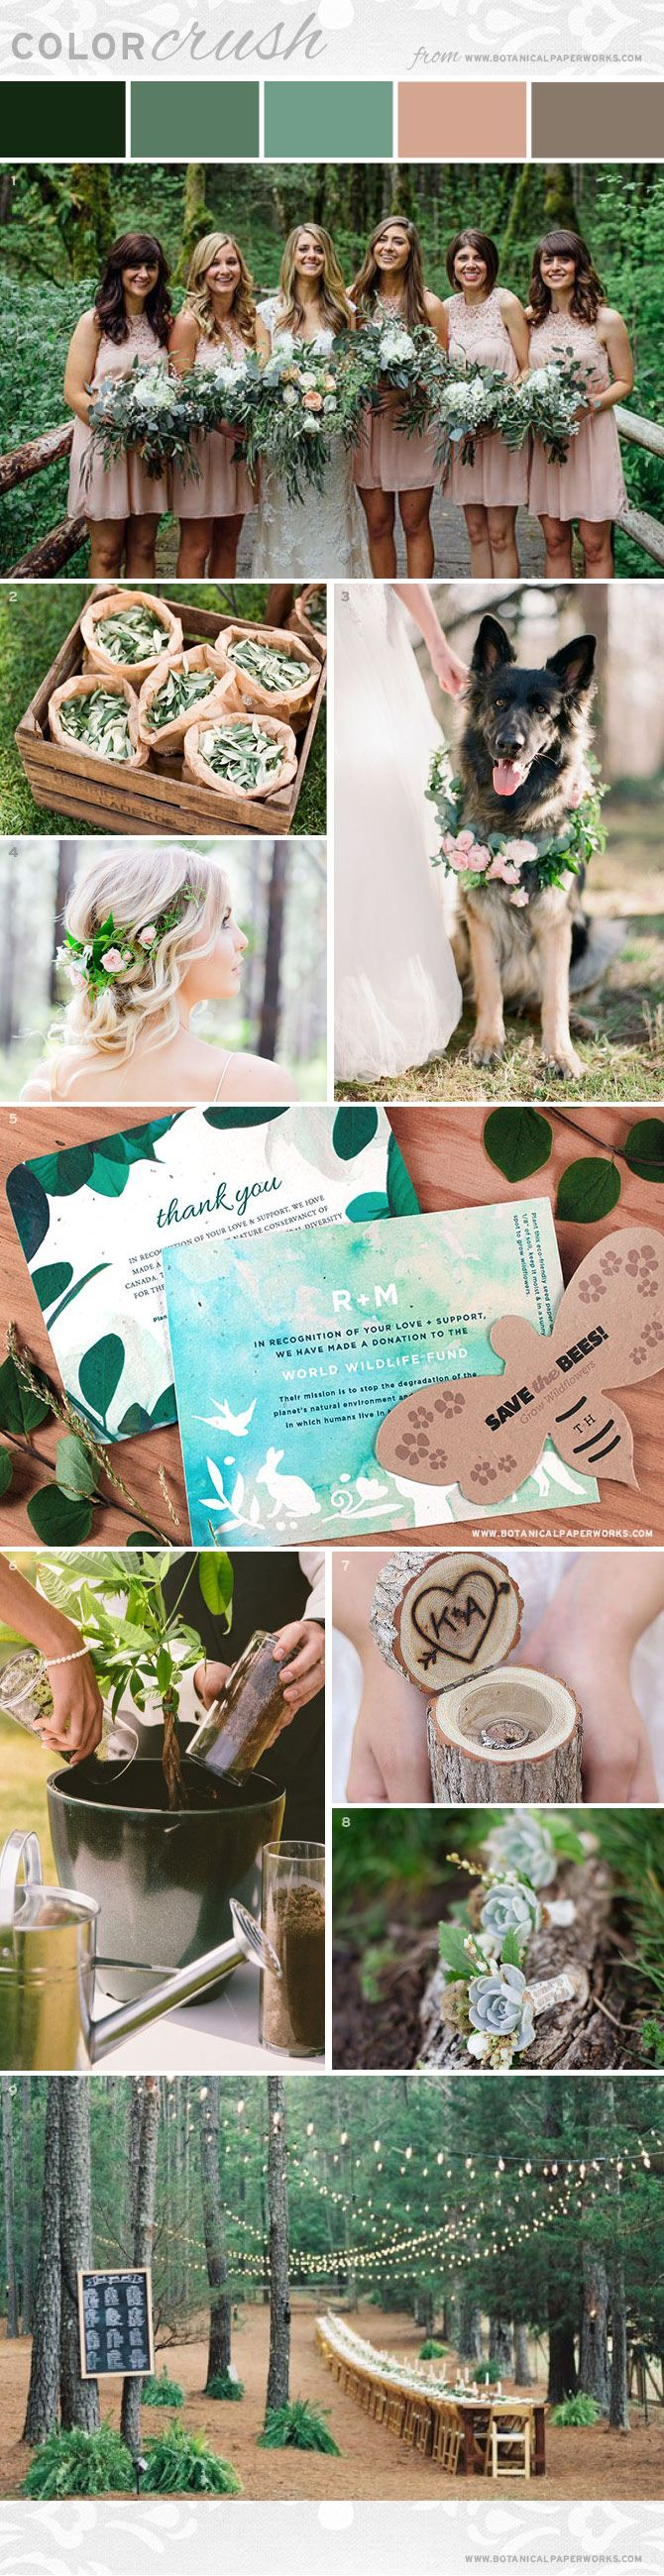 Create natural, beautiful ambiance for an eco-friendly wedding with the earthy elements featured in this dreamy #weddingstyle board. #eco #weddingplanning